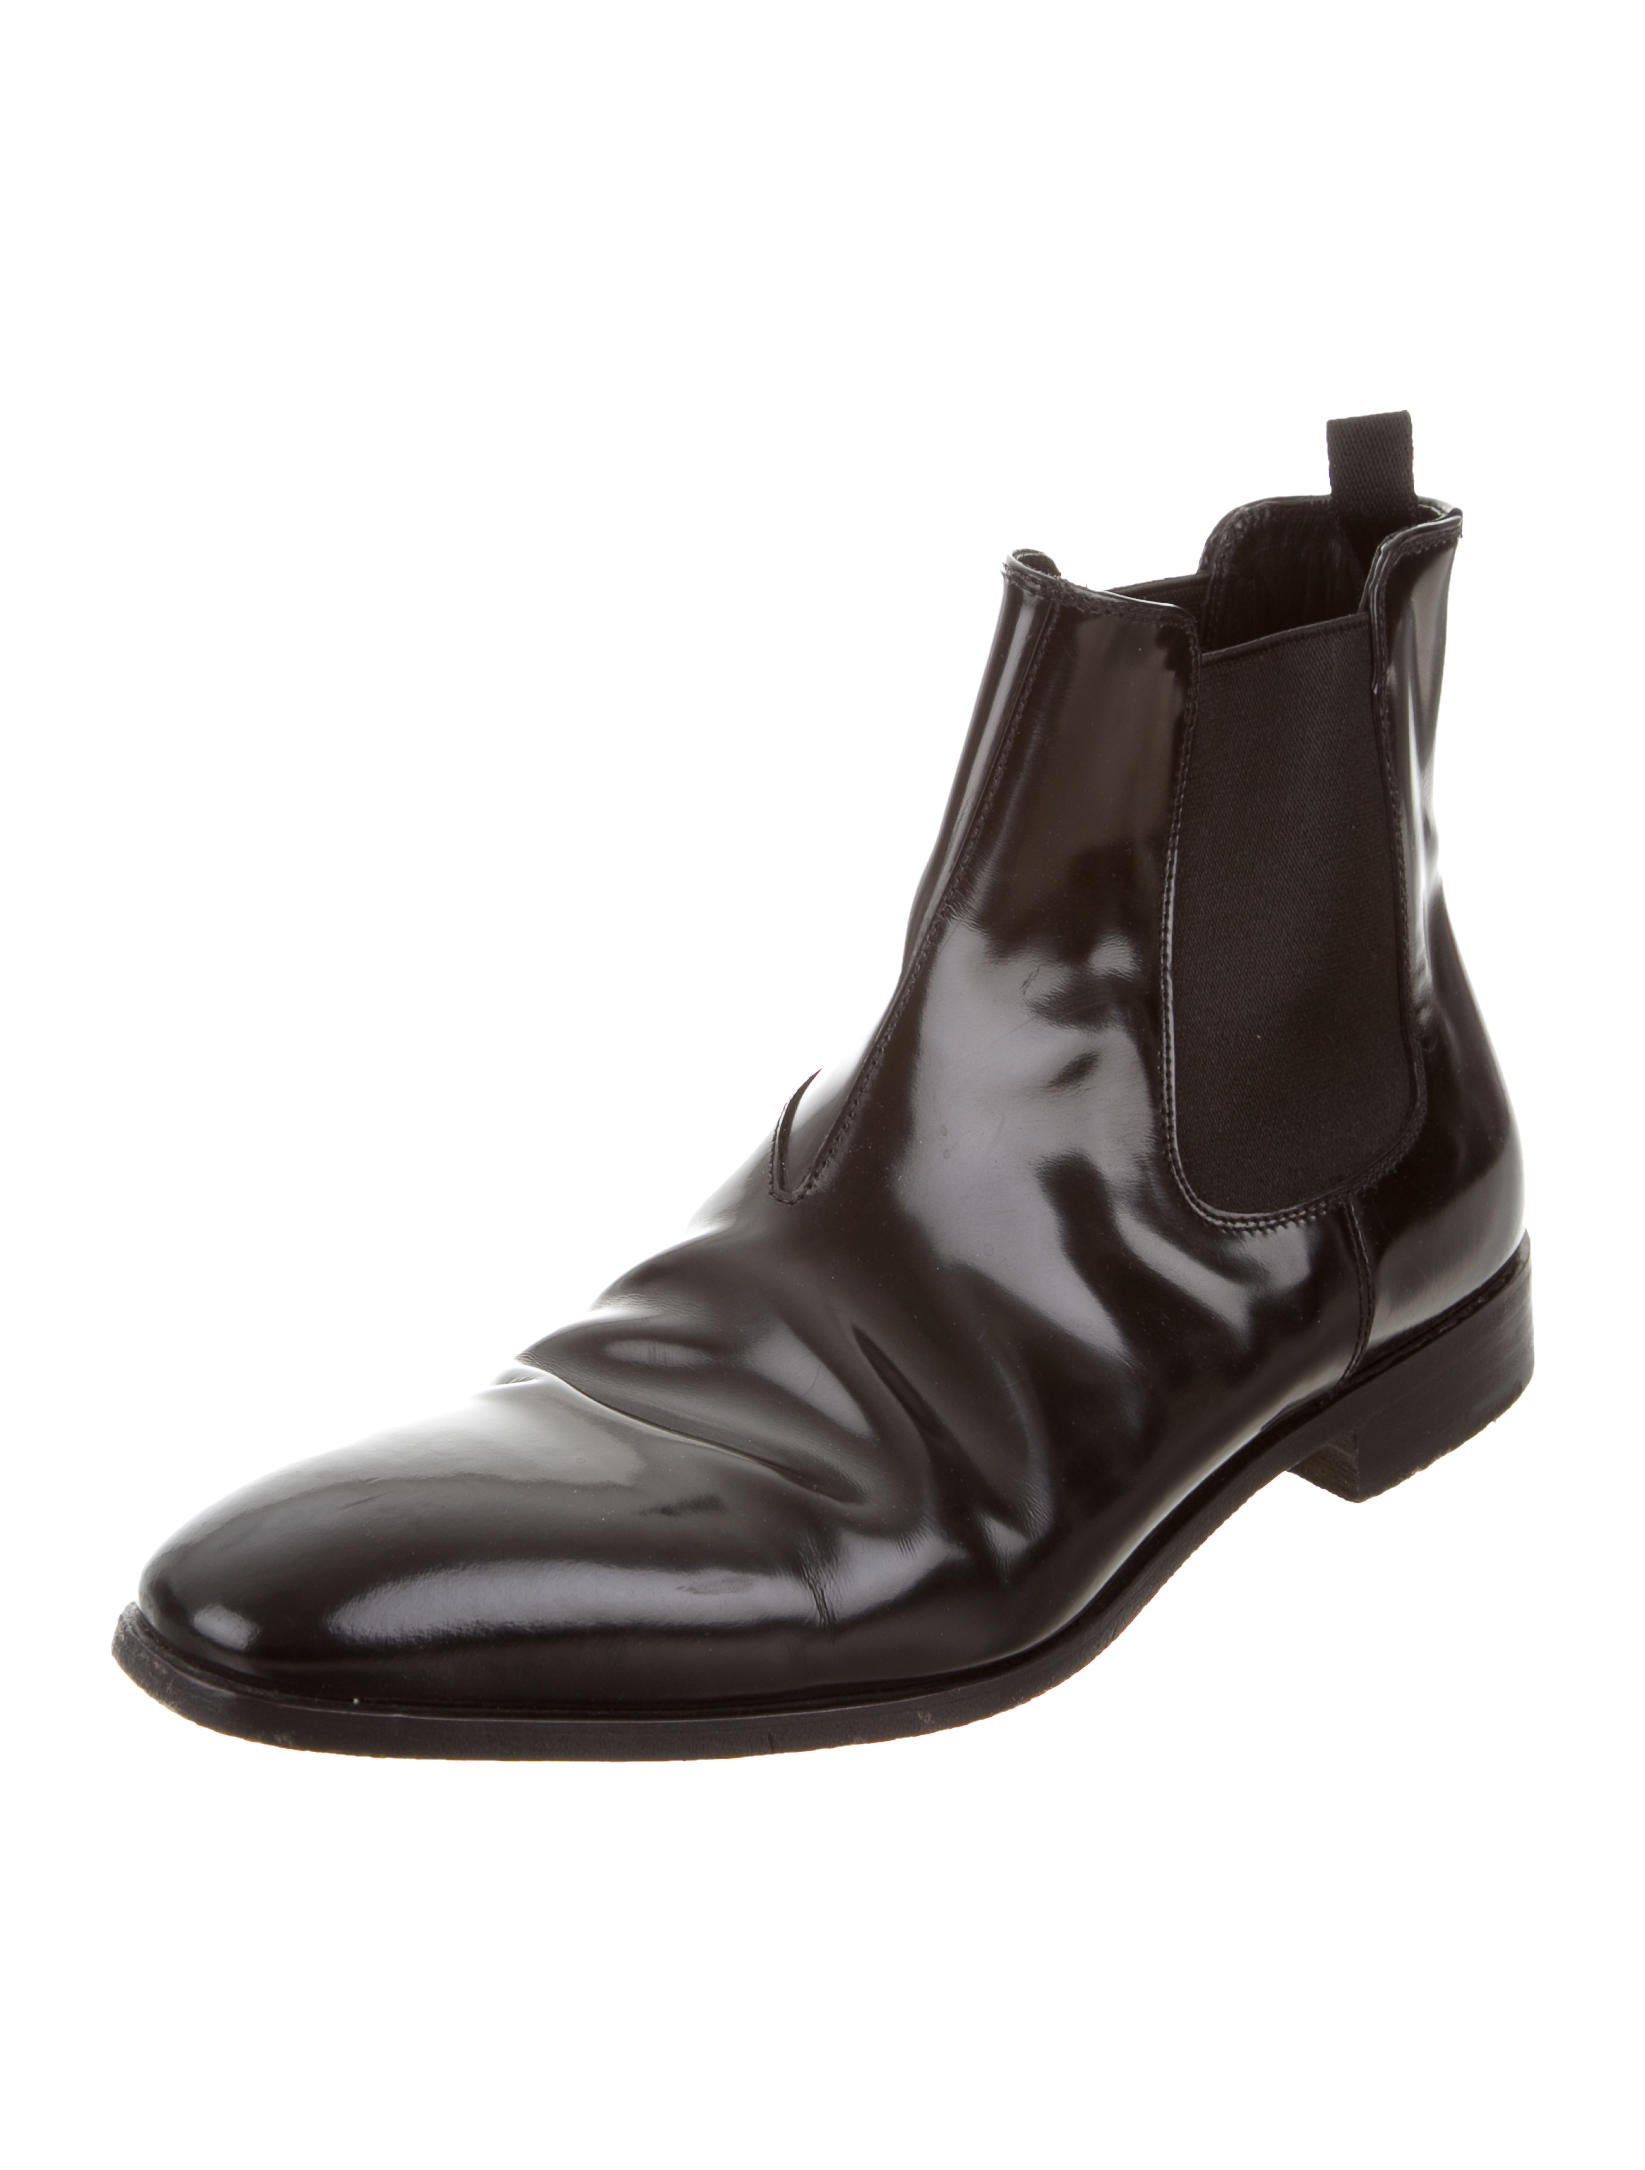 prada leather chelsea boots shoes pra157206 the realreal